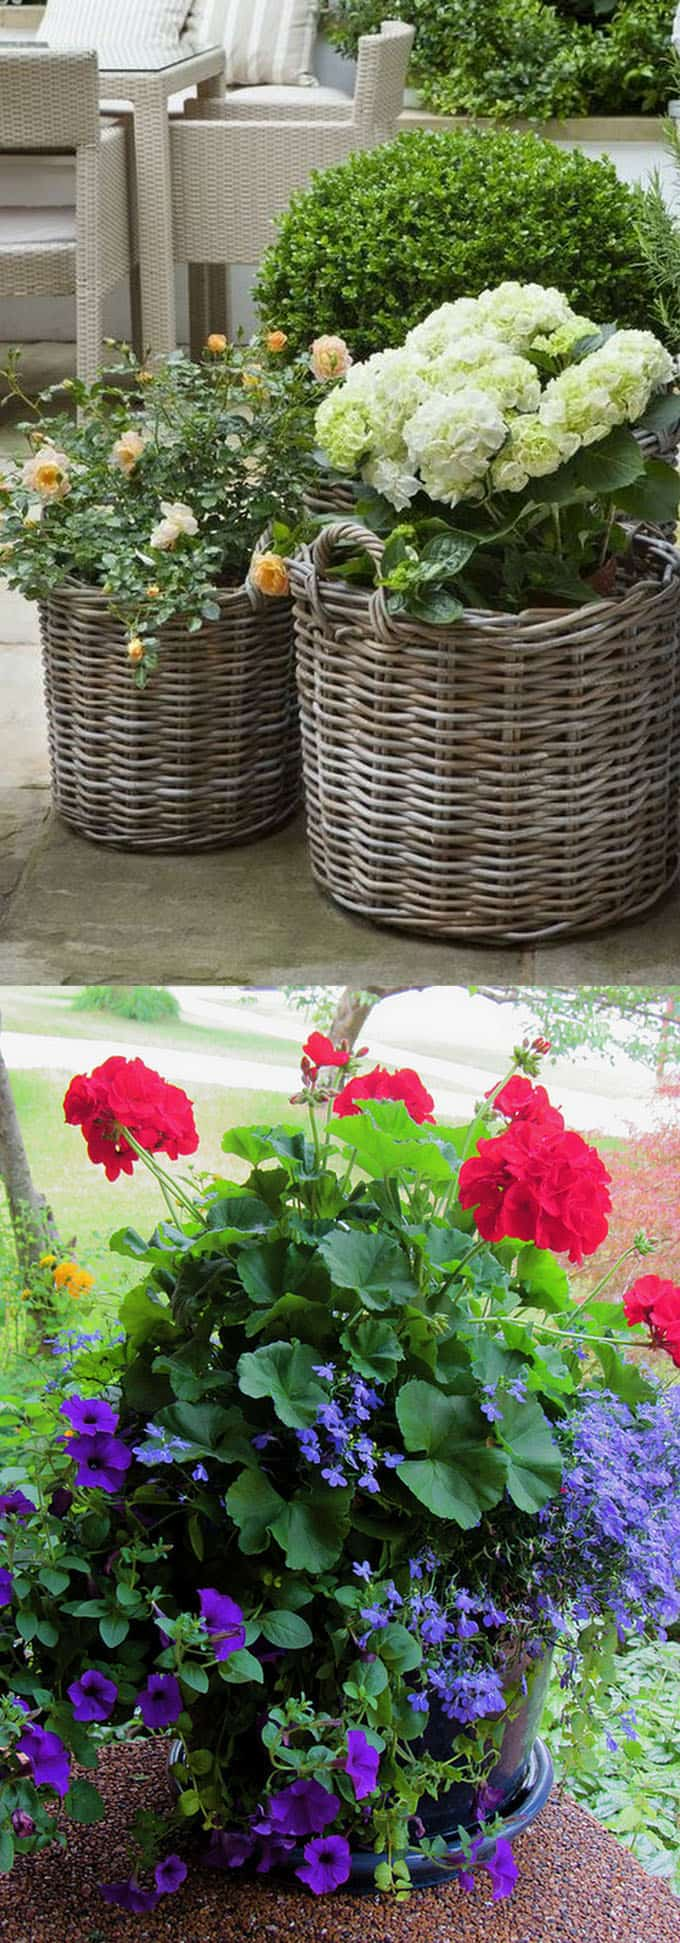 roses and geraniums in pots